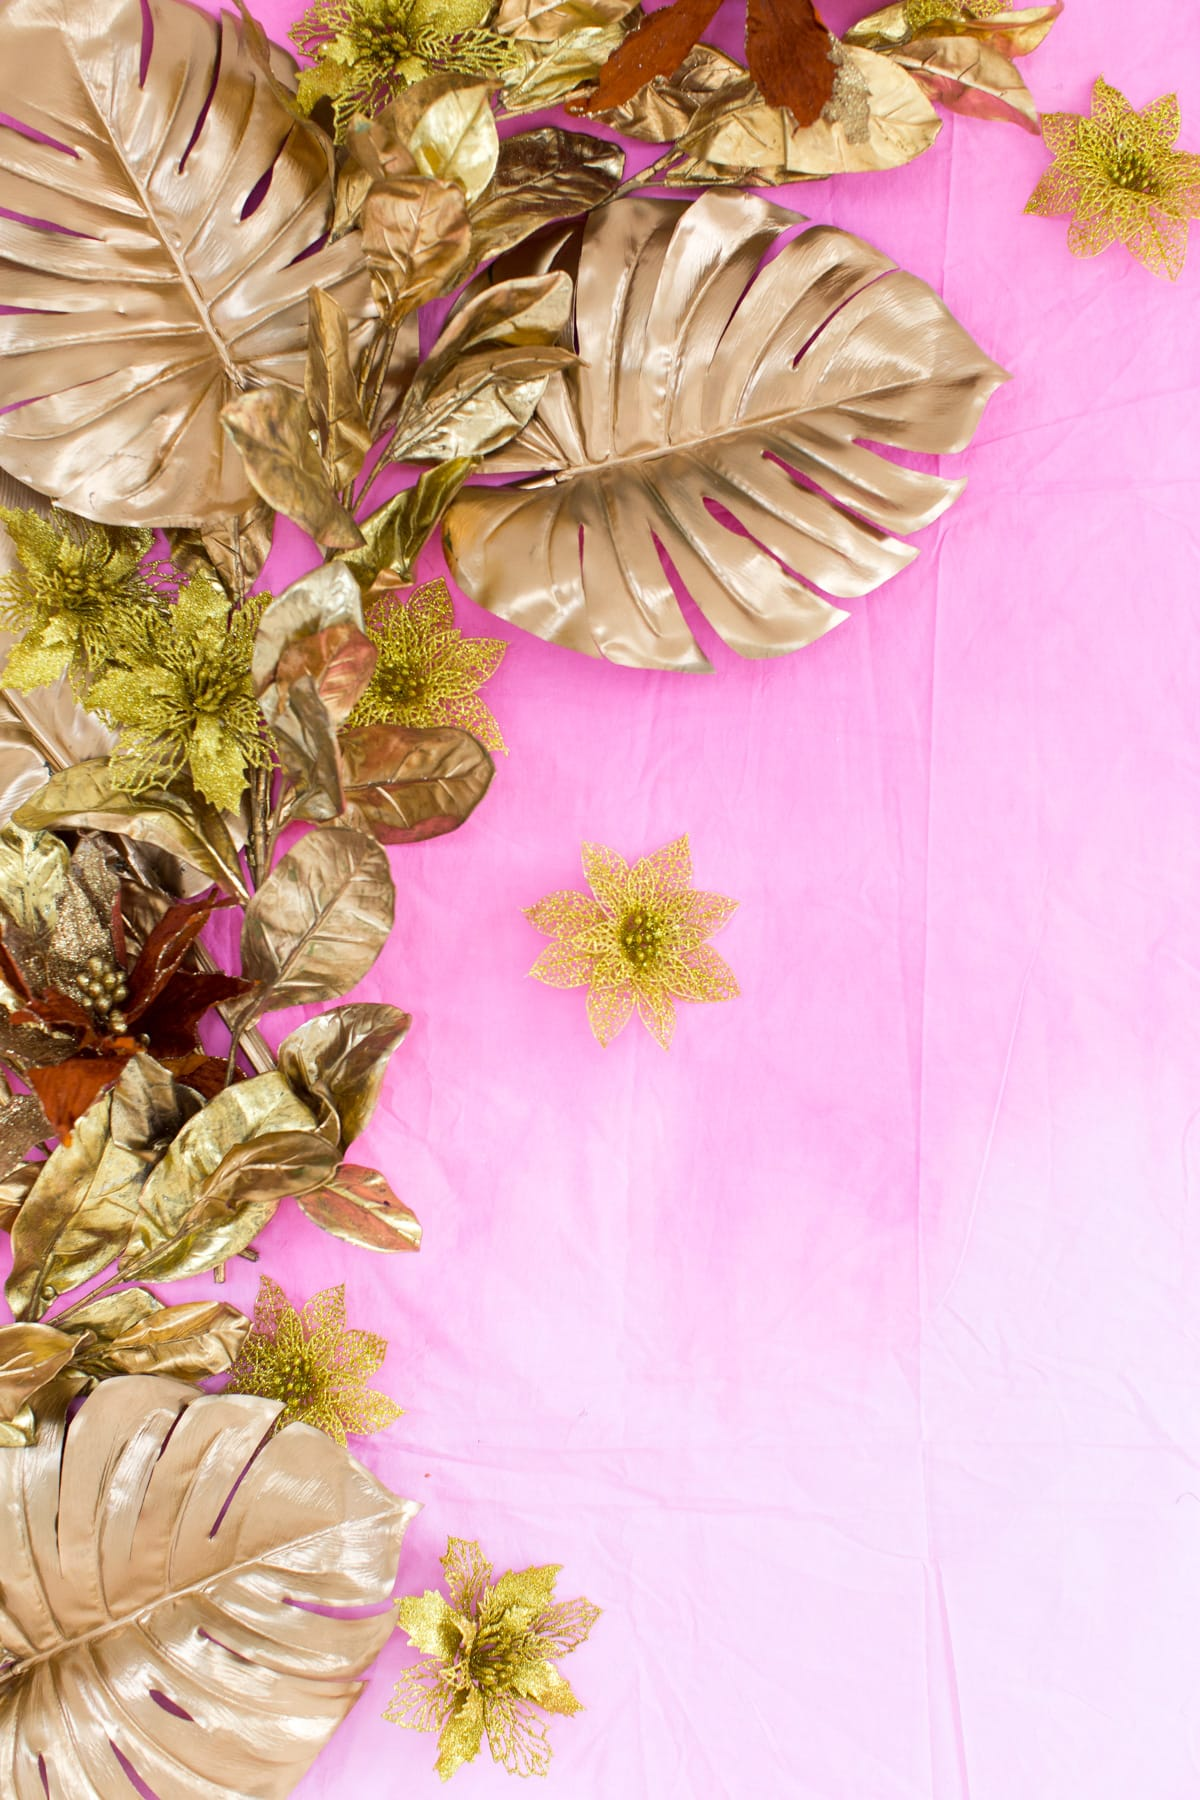 DIY Gold Leaf Photo Backdrop by top Houston Lifestyle blogger Ashley Rose of Sugar and Cloth